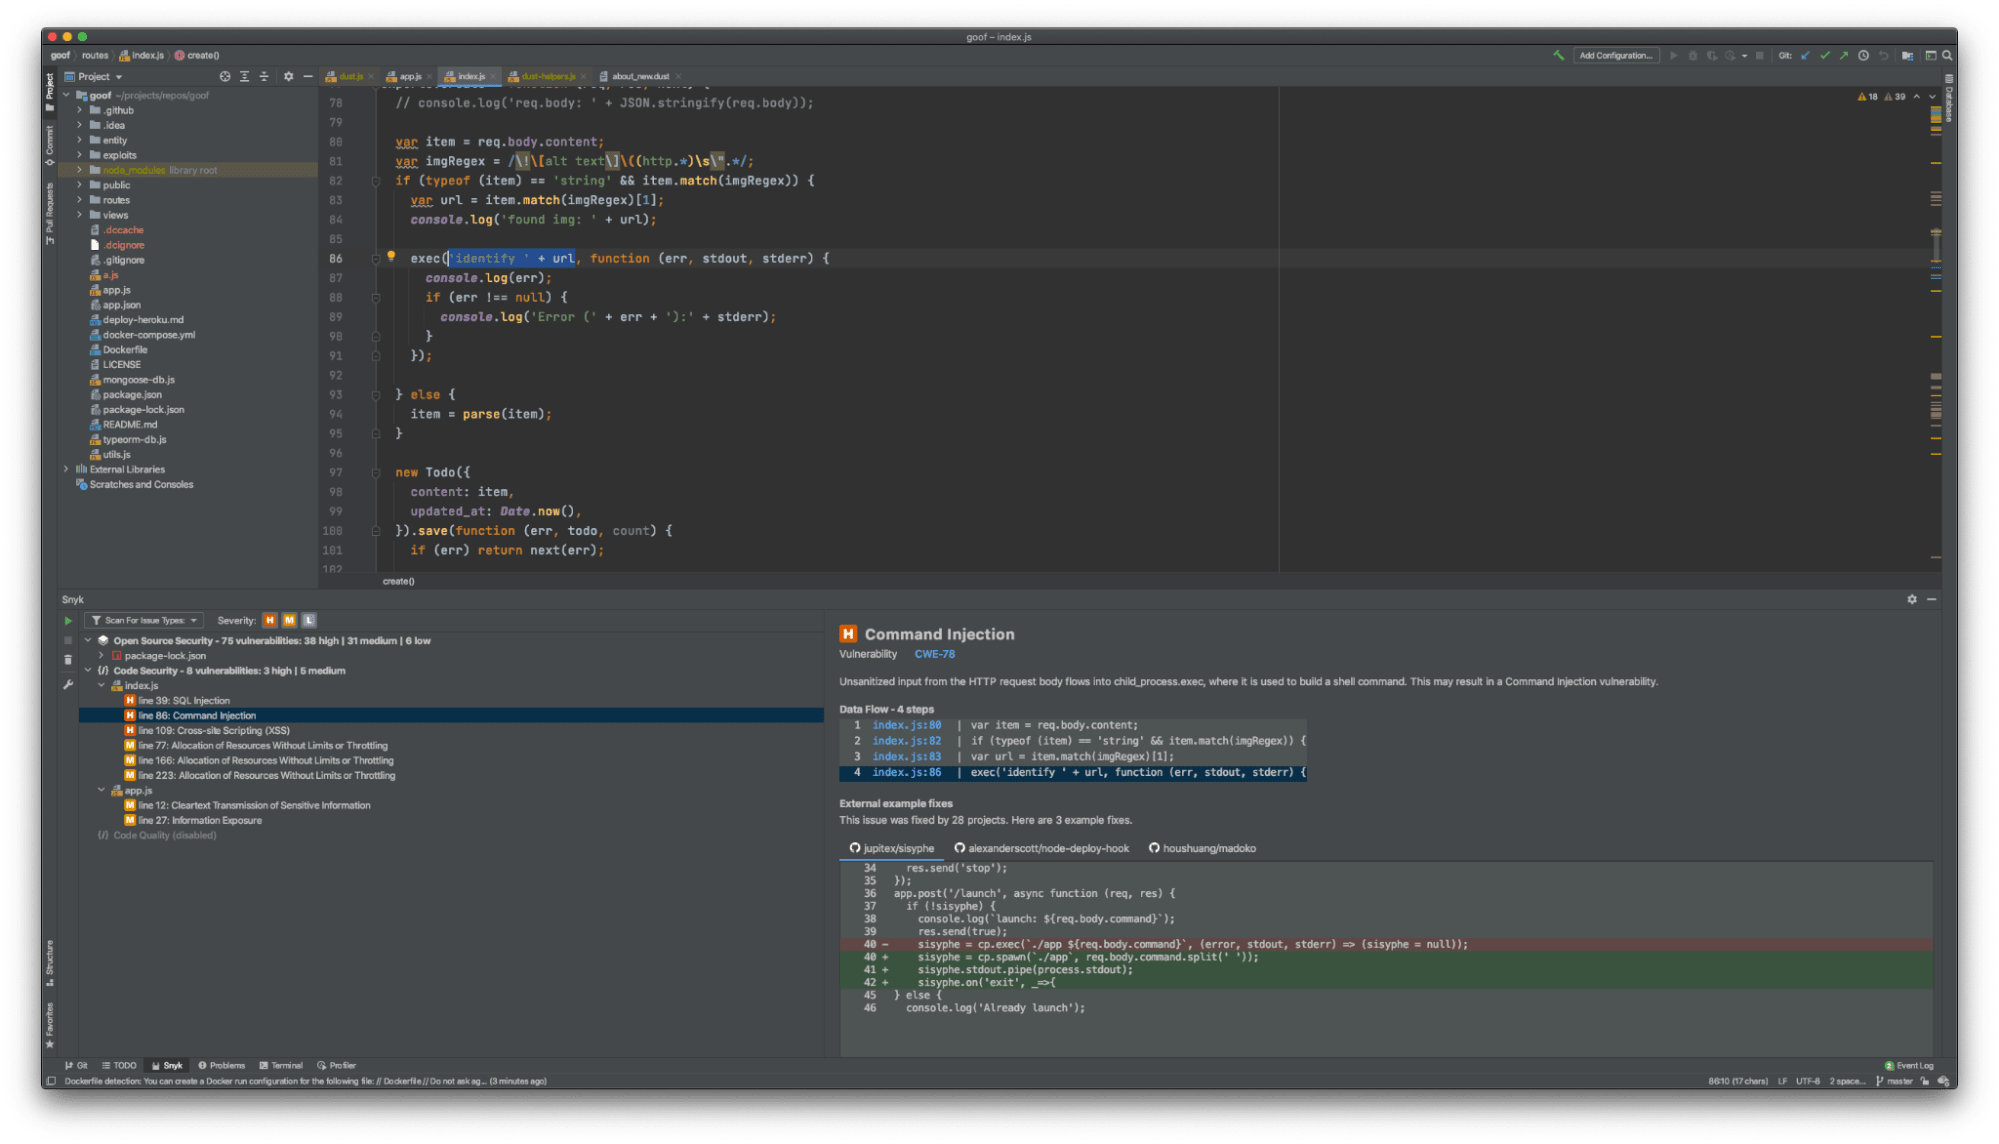 Snyk Code integrates into your IDE to find vulnerabilities and suggest fixes